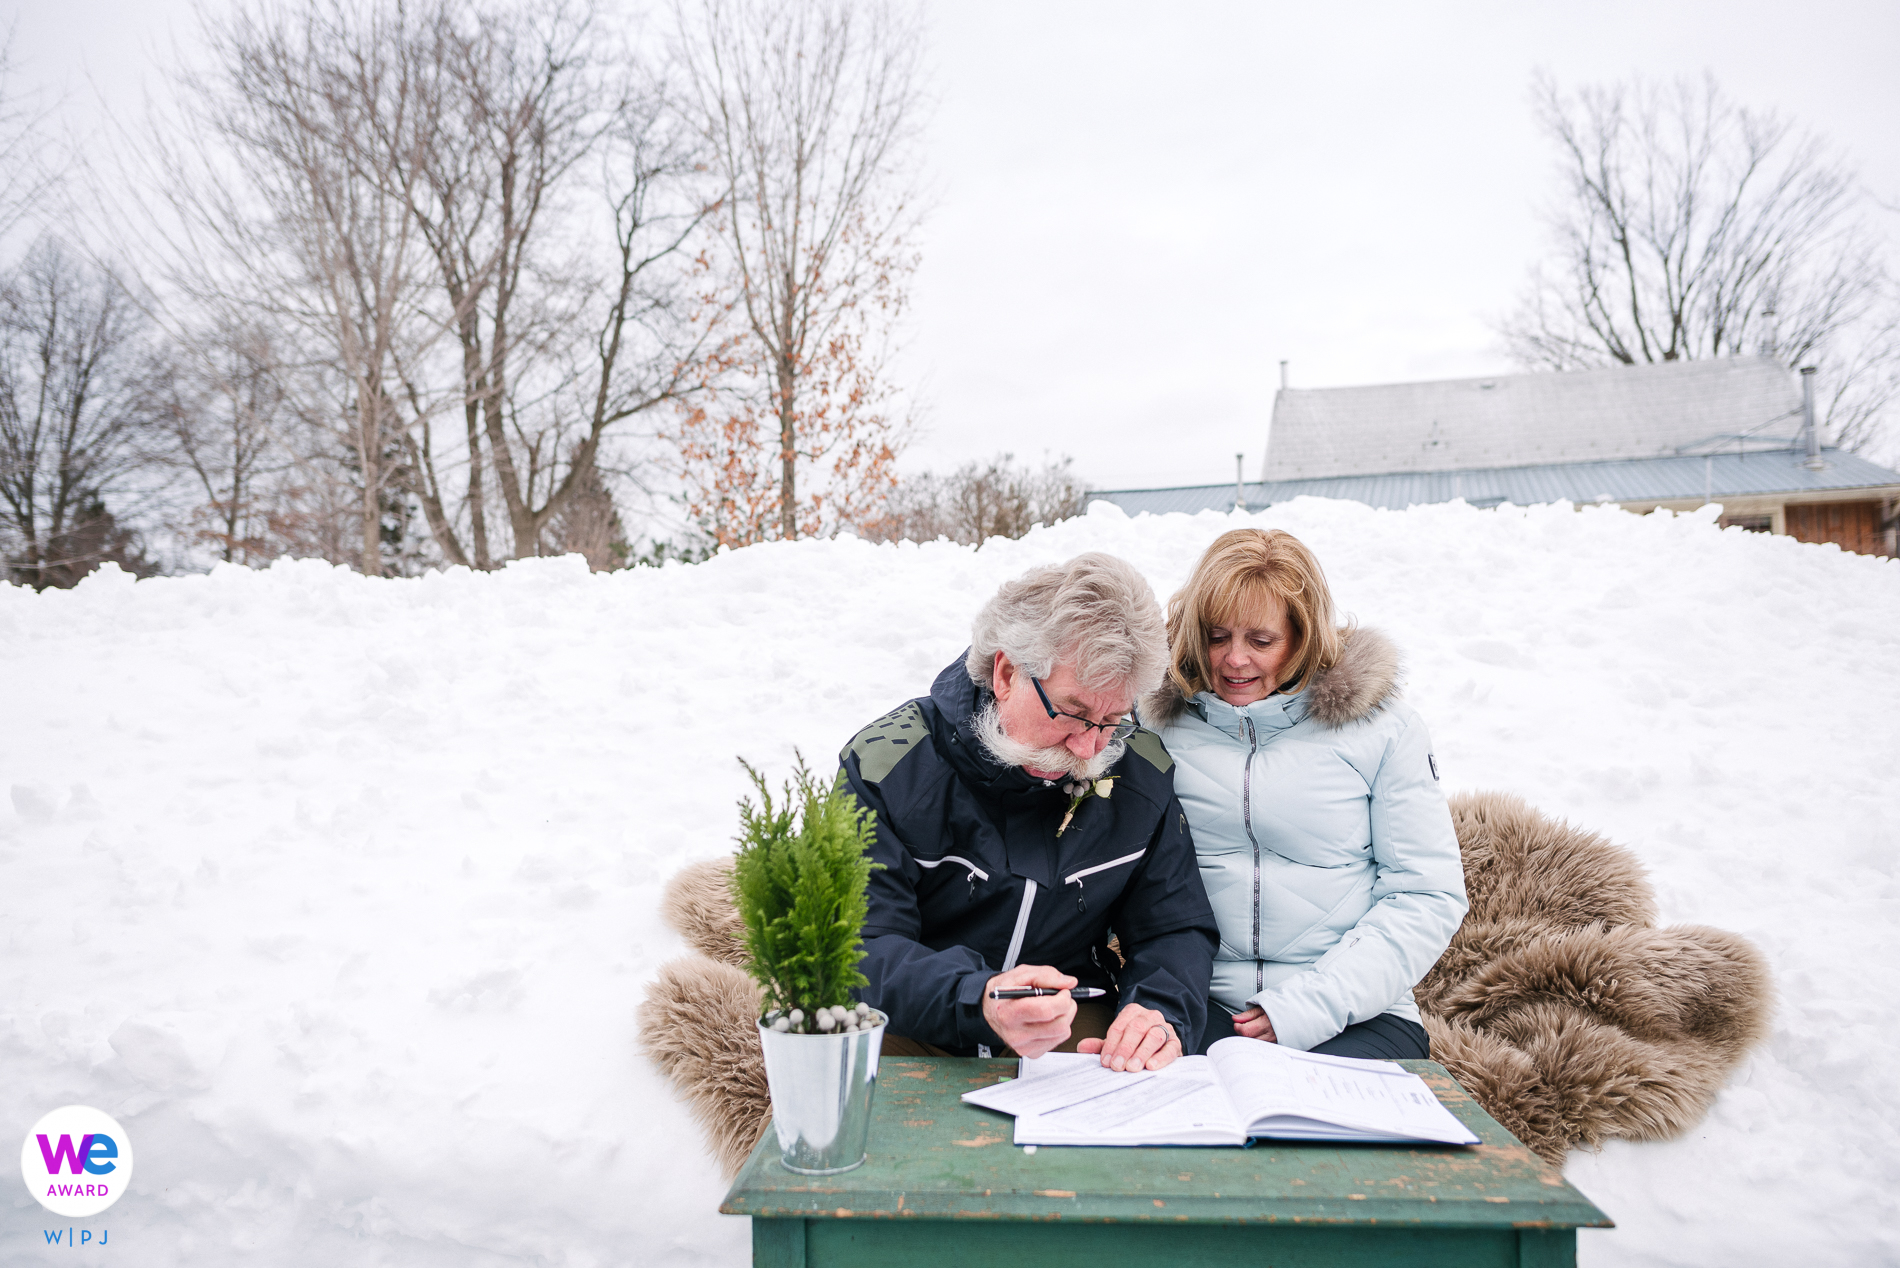 Rockport, Ontario, Thousand Islands Winter Wedding Image | The couple signs their papers, sitting on a blanket in the snow